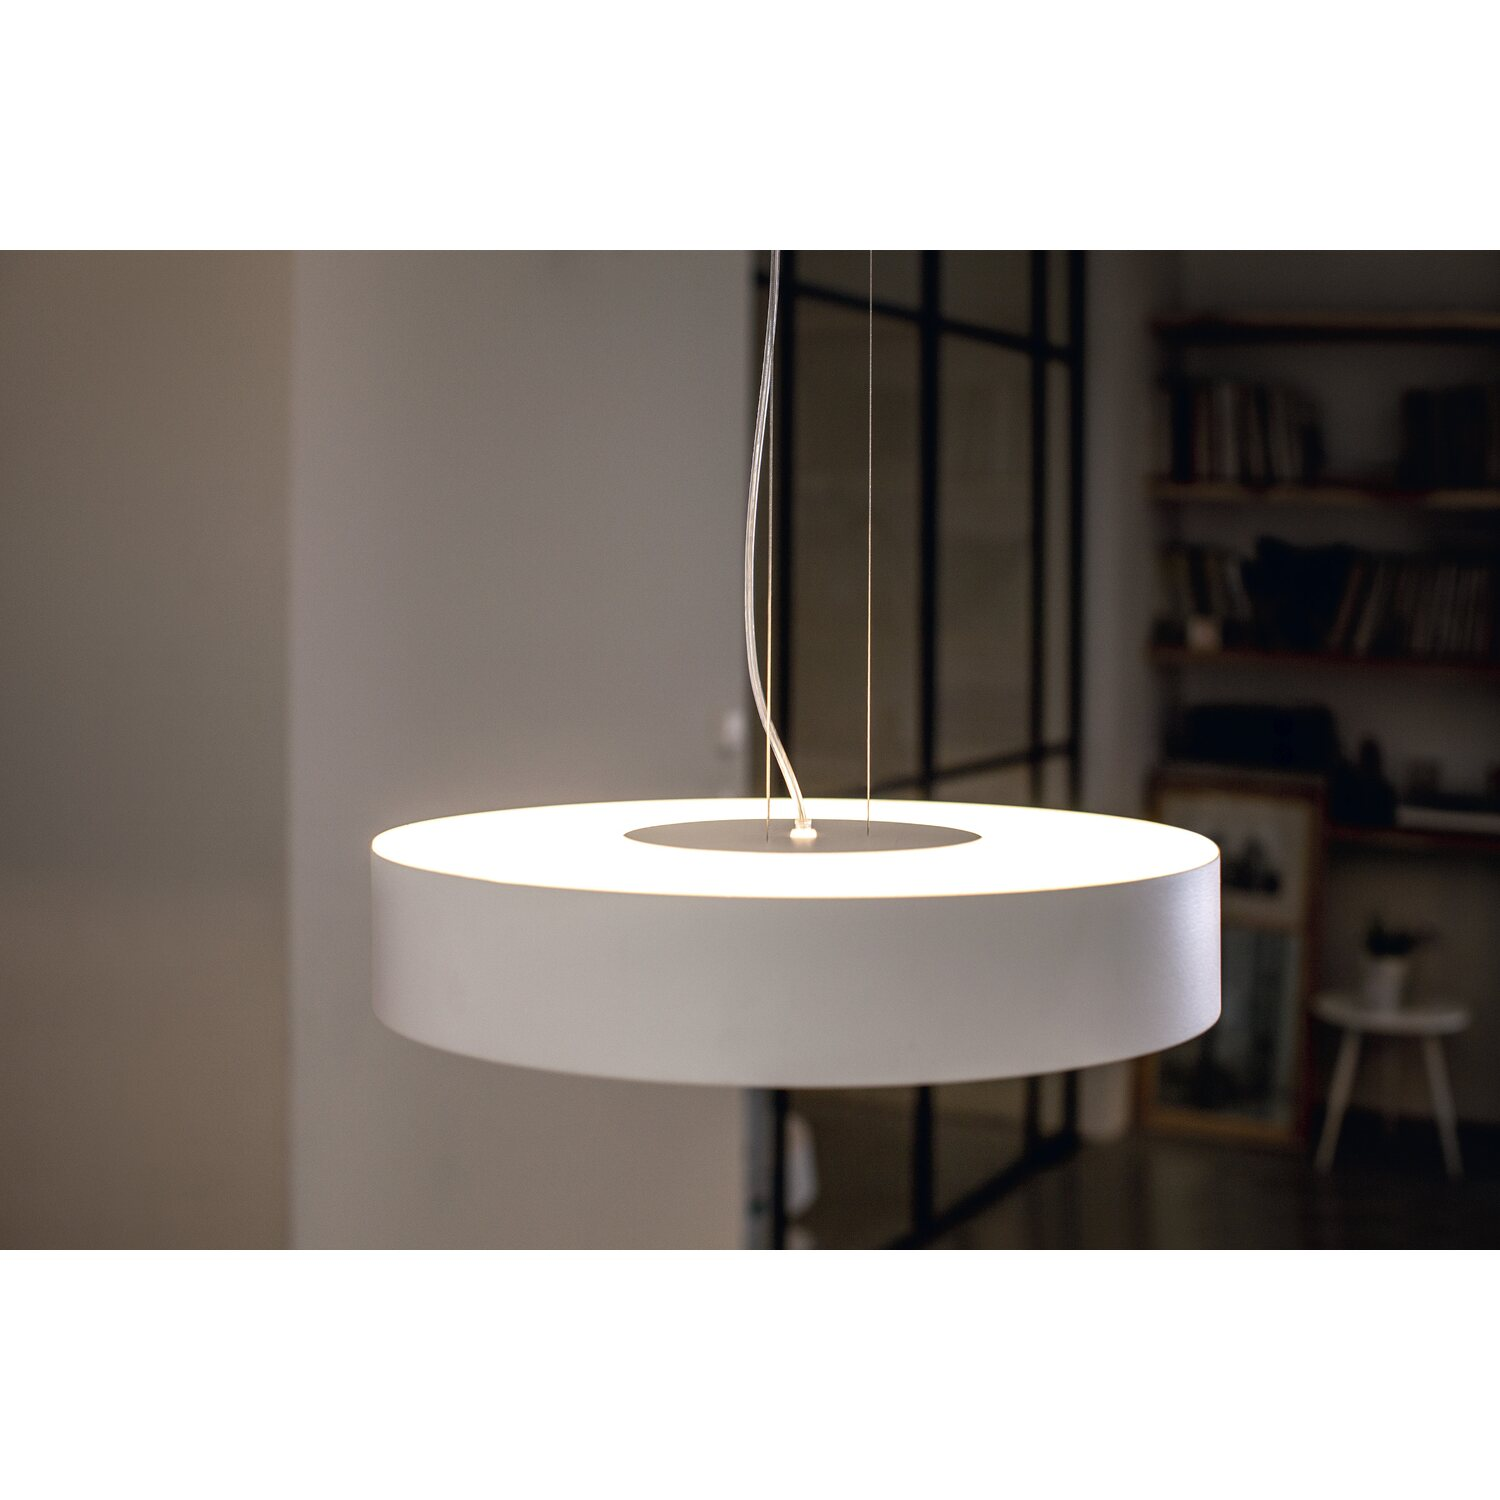 Philips hue lampadario a sospensione led fair con - Philips illuminazione casa ...